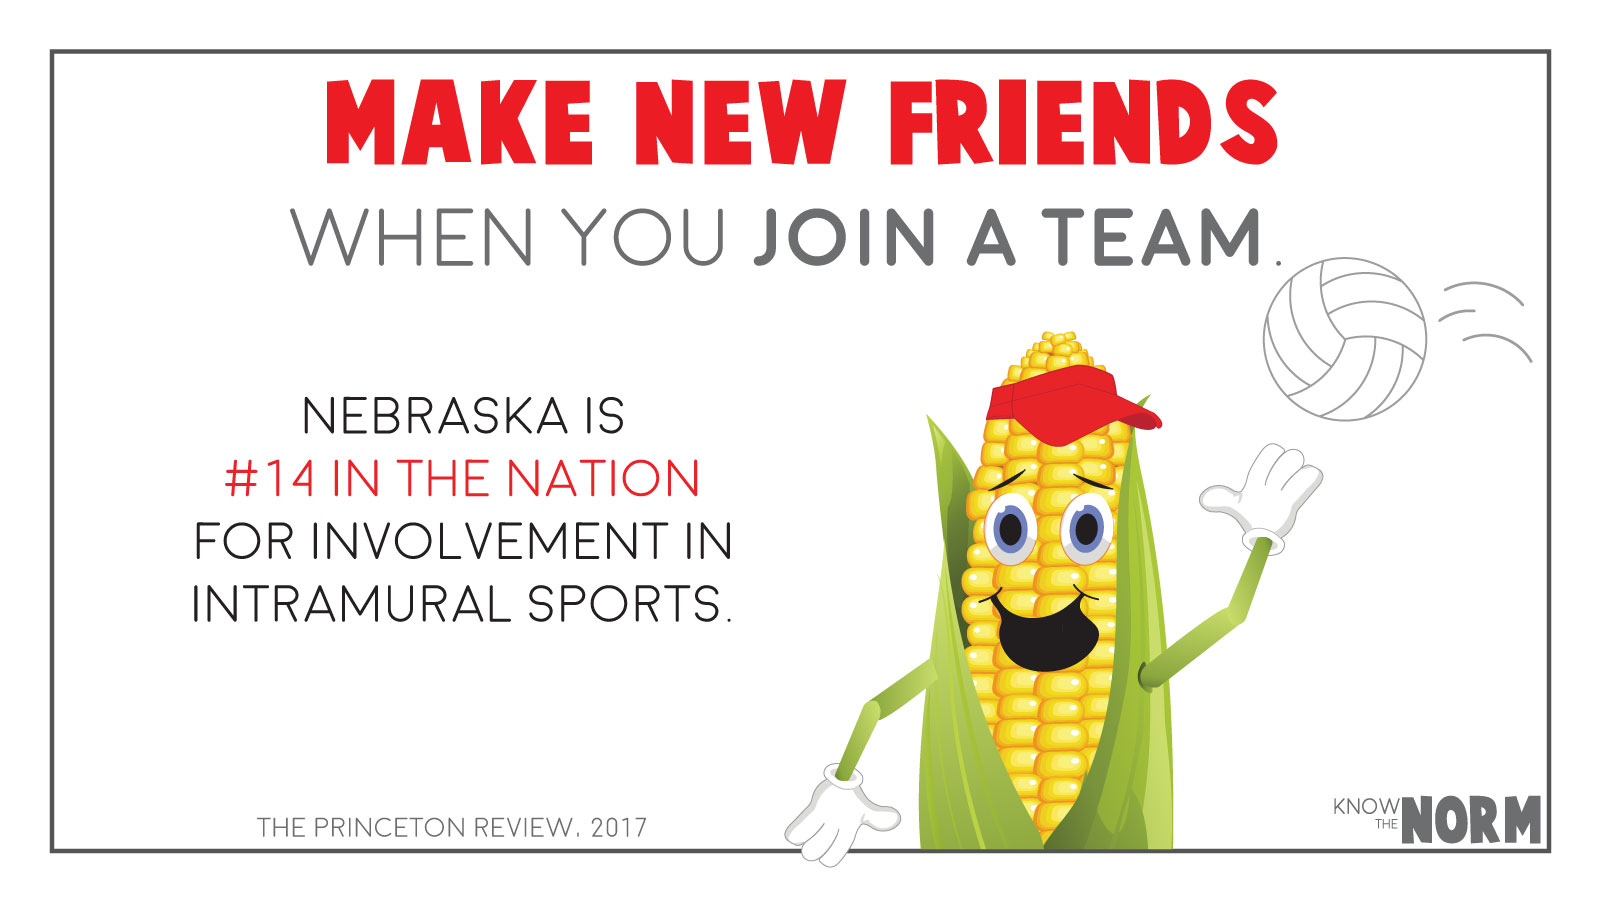 Make new friends when you join a team